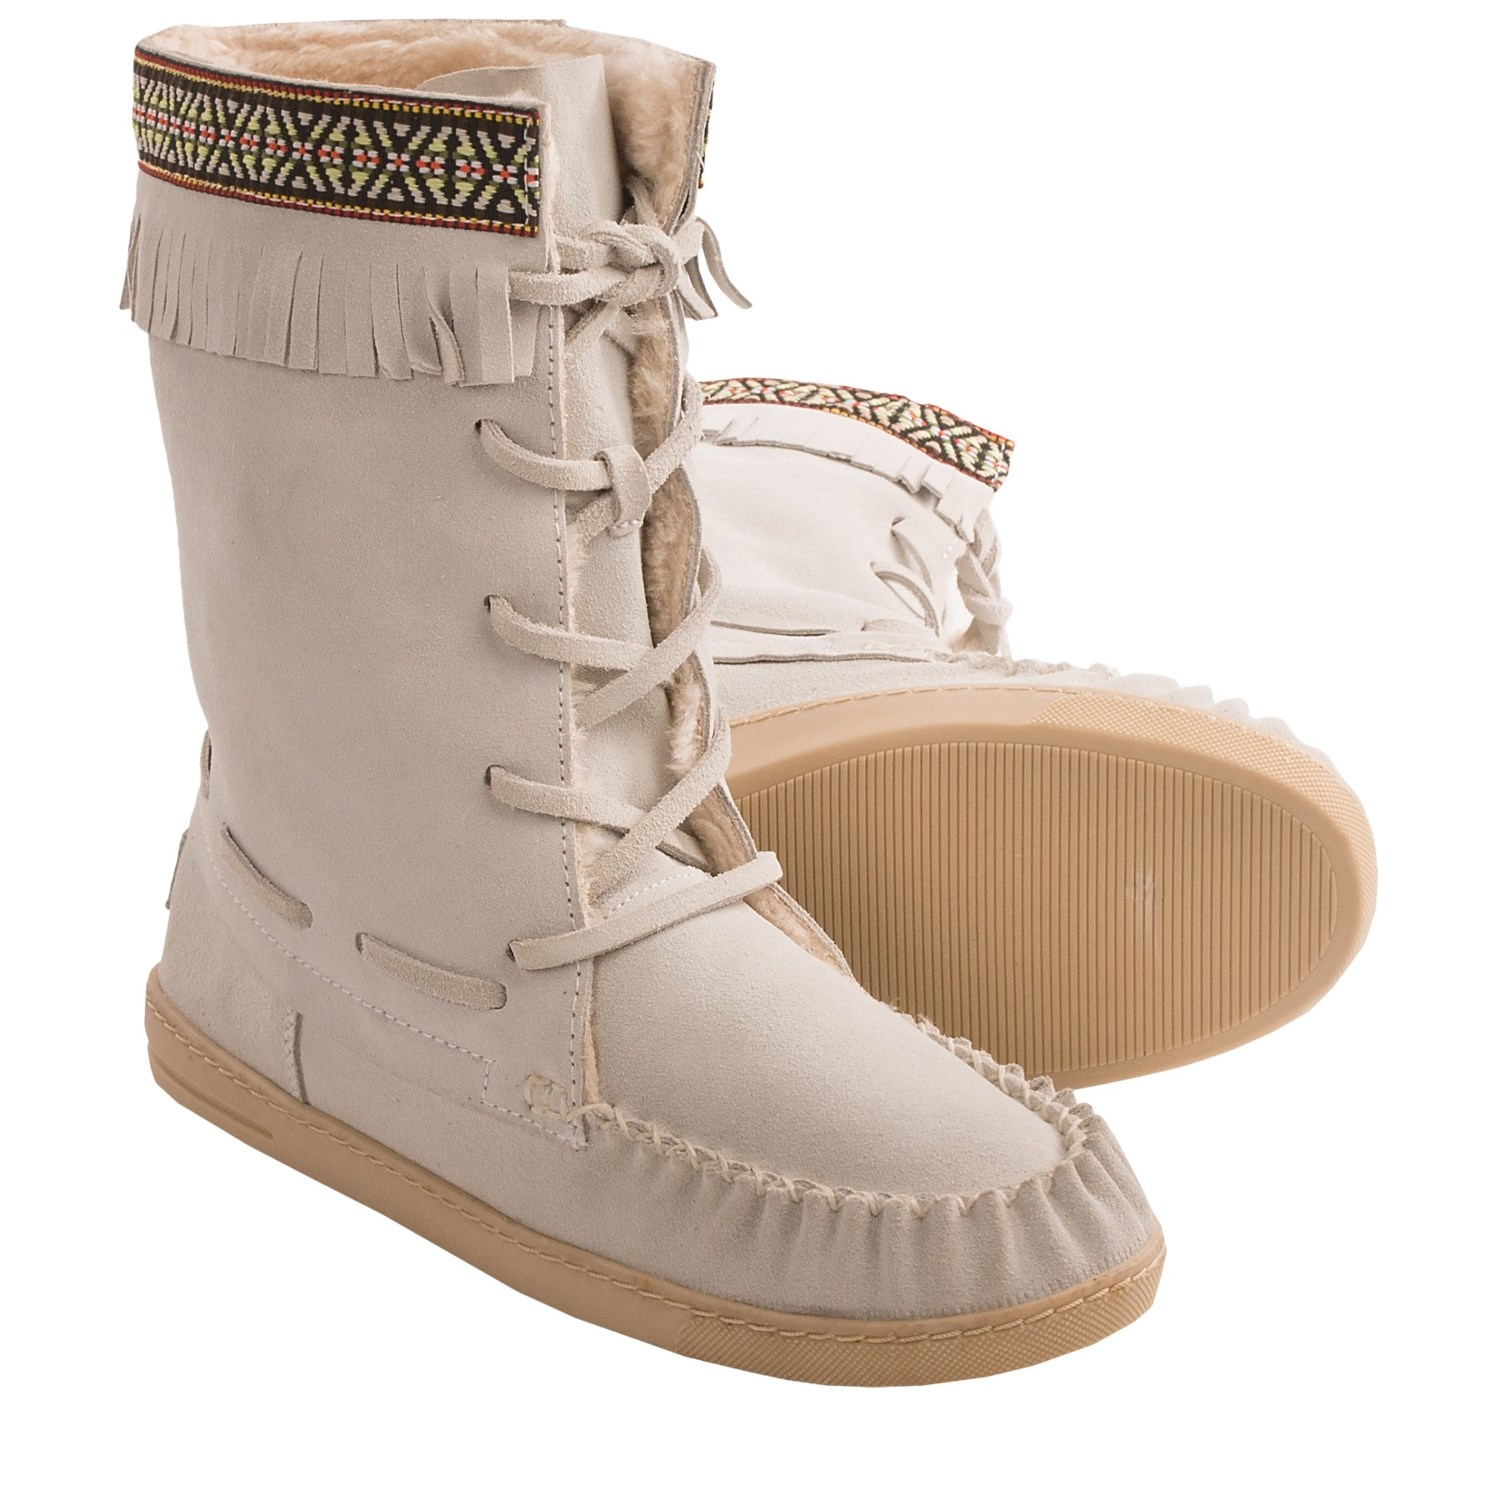 grizzleez by zigi cer moccasin boots for save 77